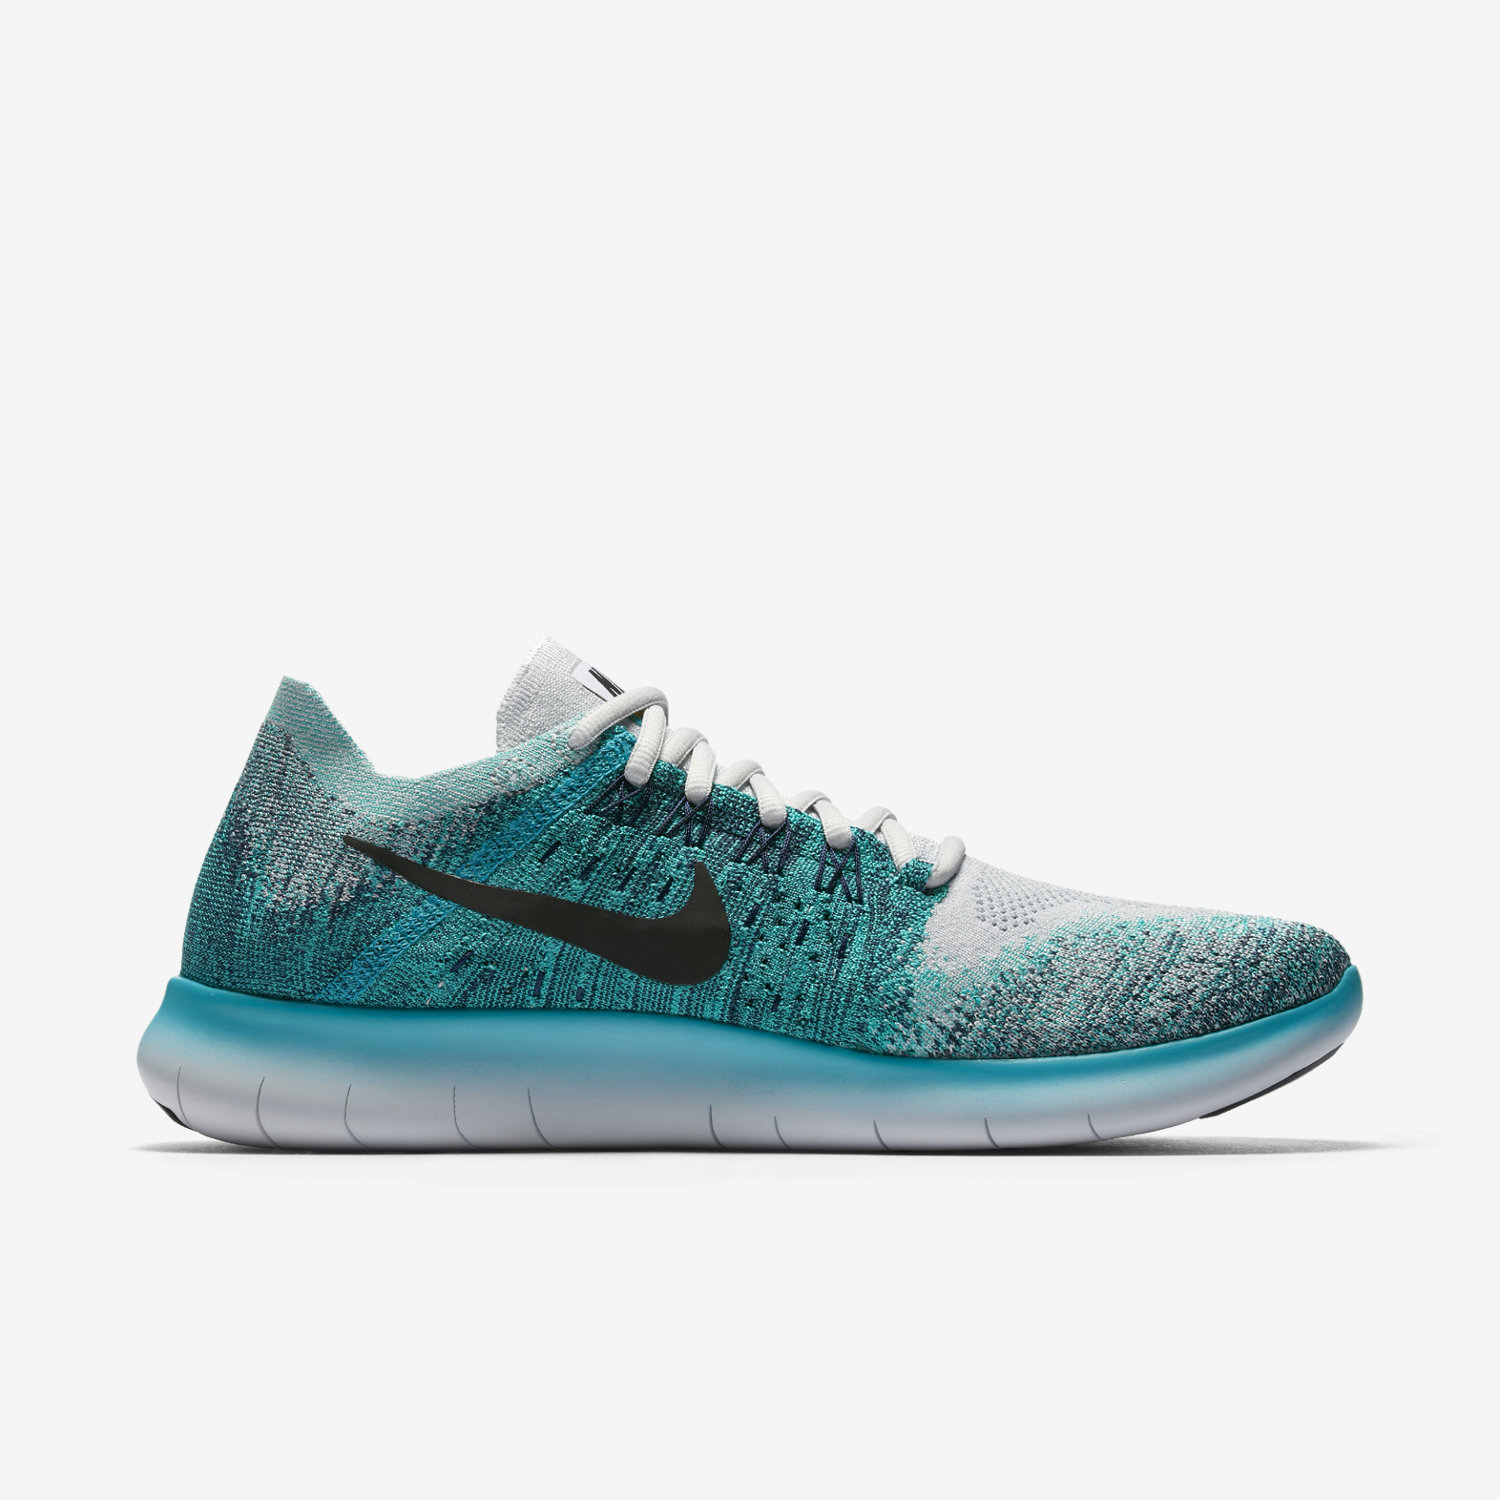 nike black and turquoise knit running shoes